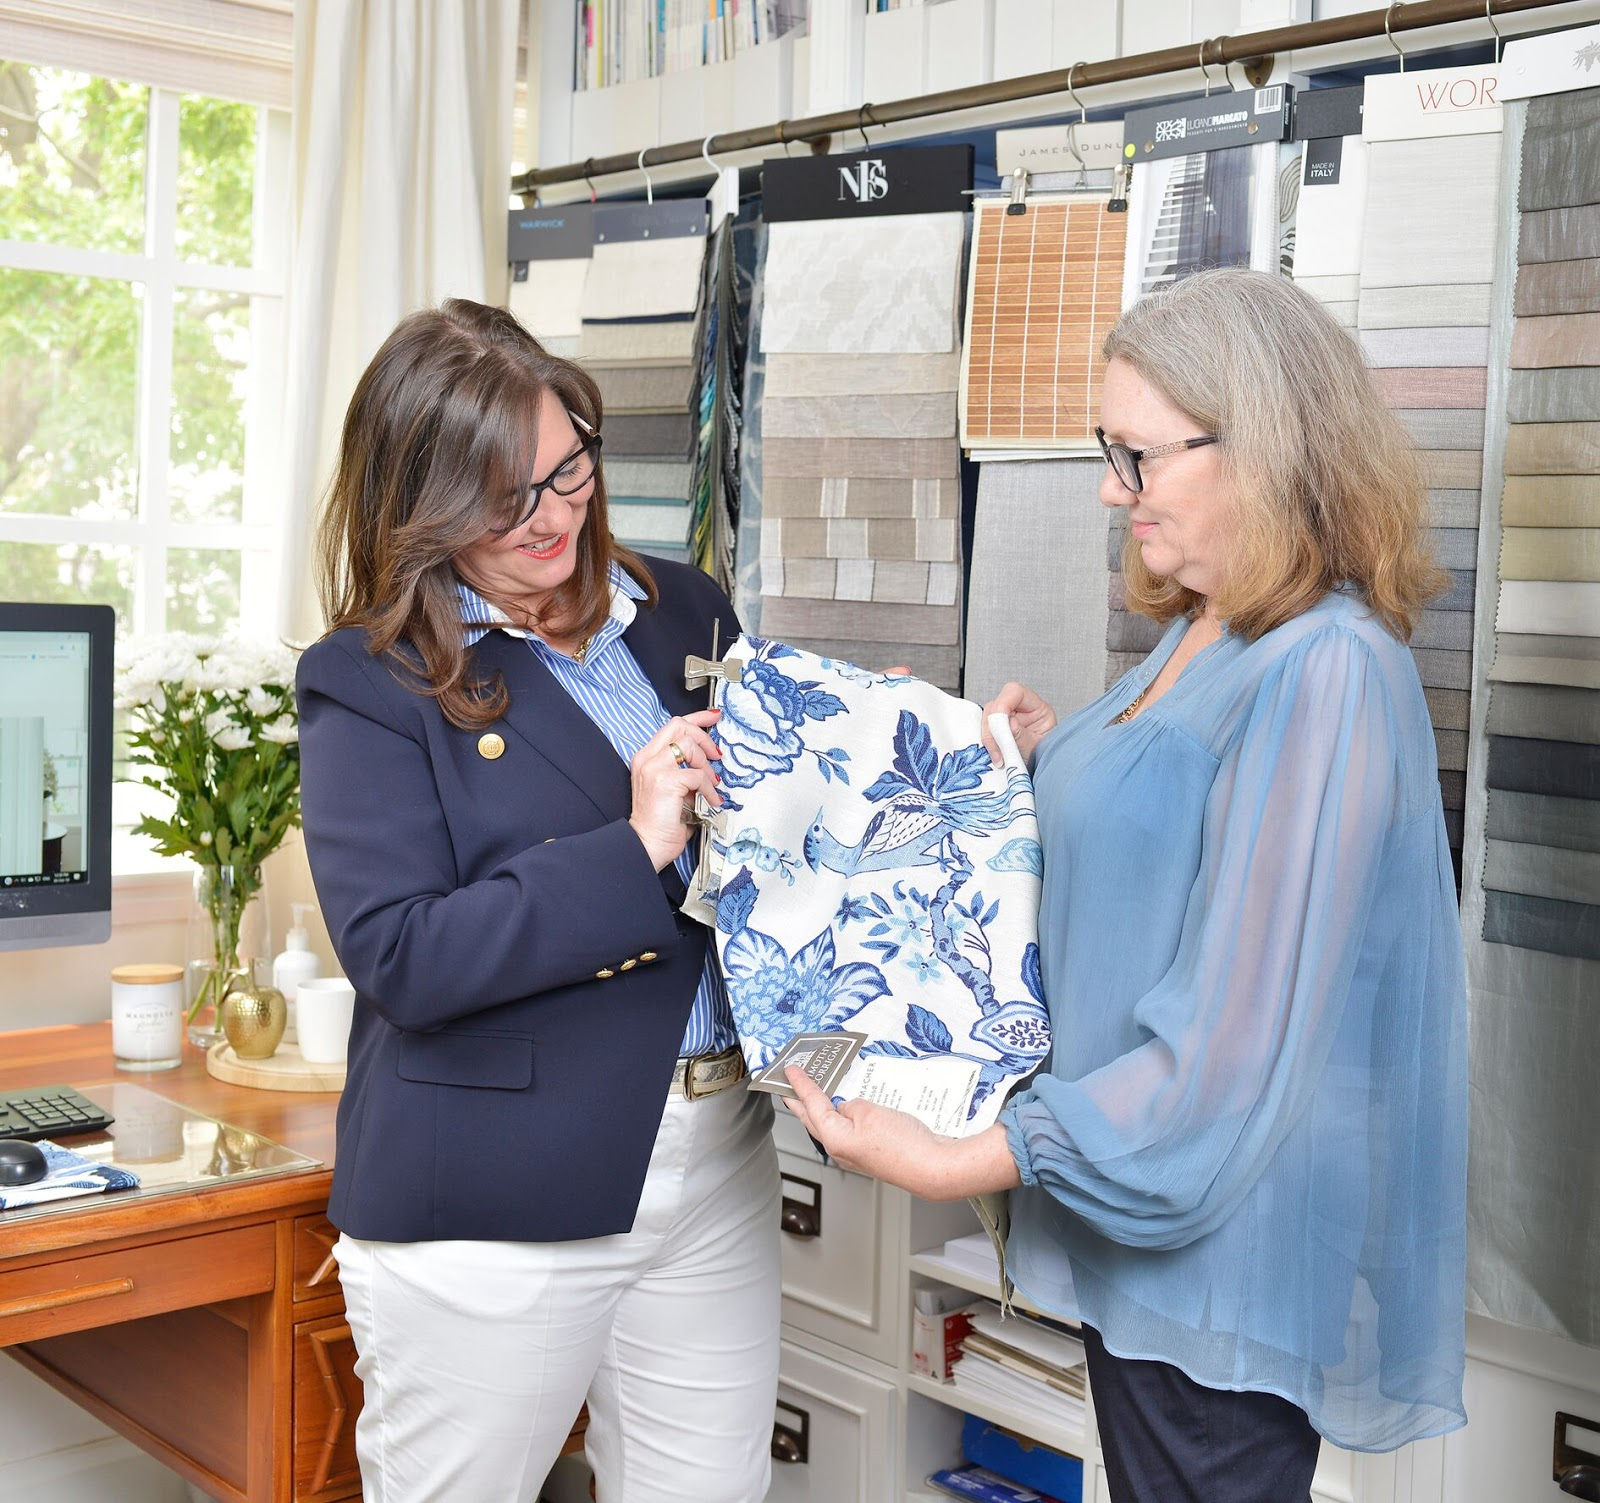 Nadine with clients choosing fabric